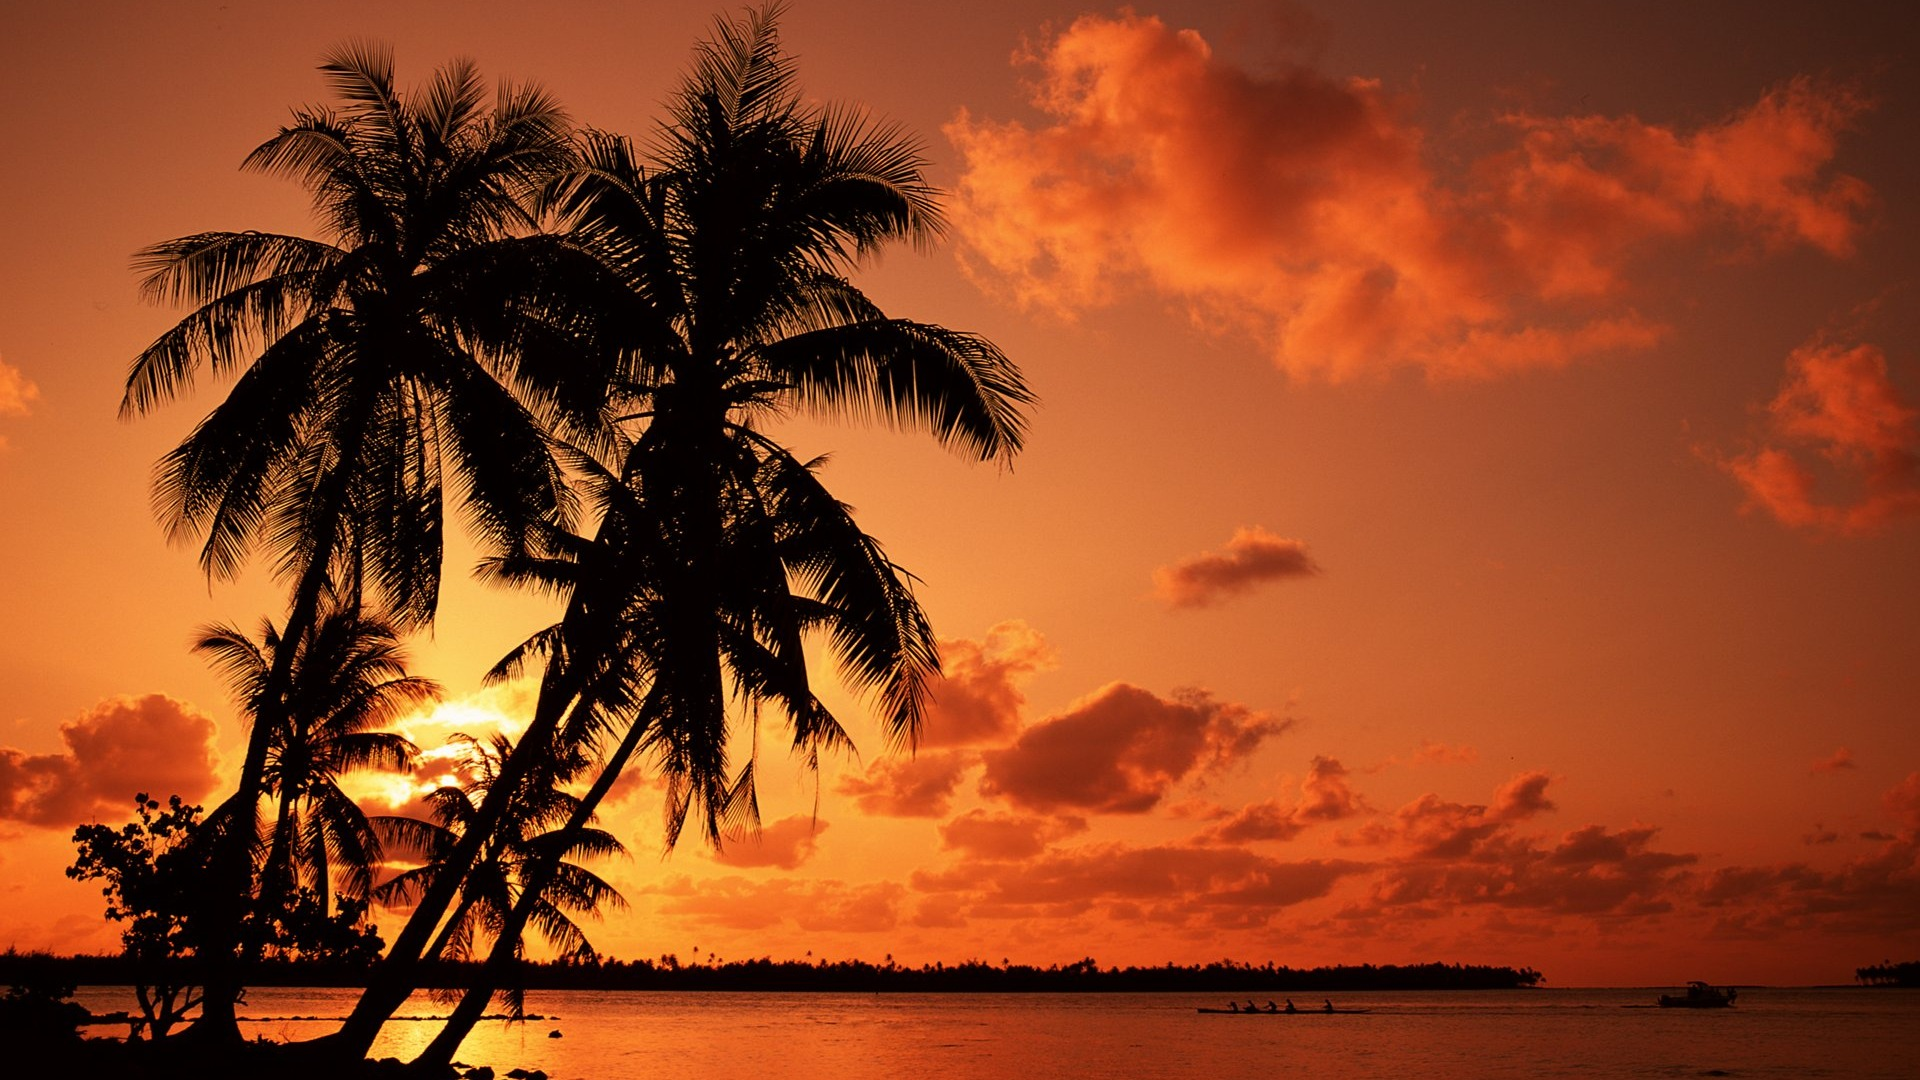 palm tree full hd wallpaper and background image | 1920x1080 | id:386252